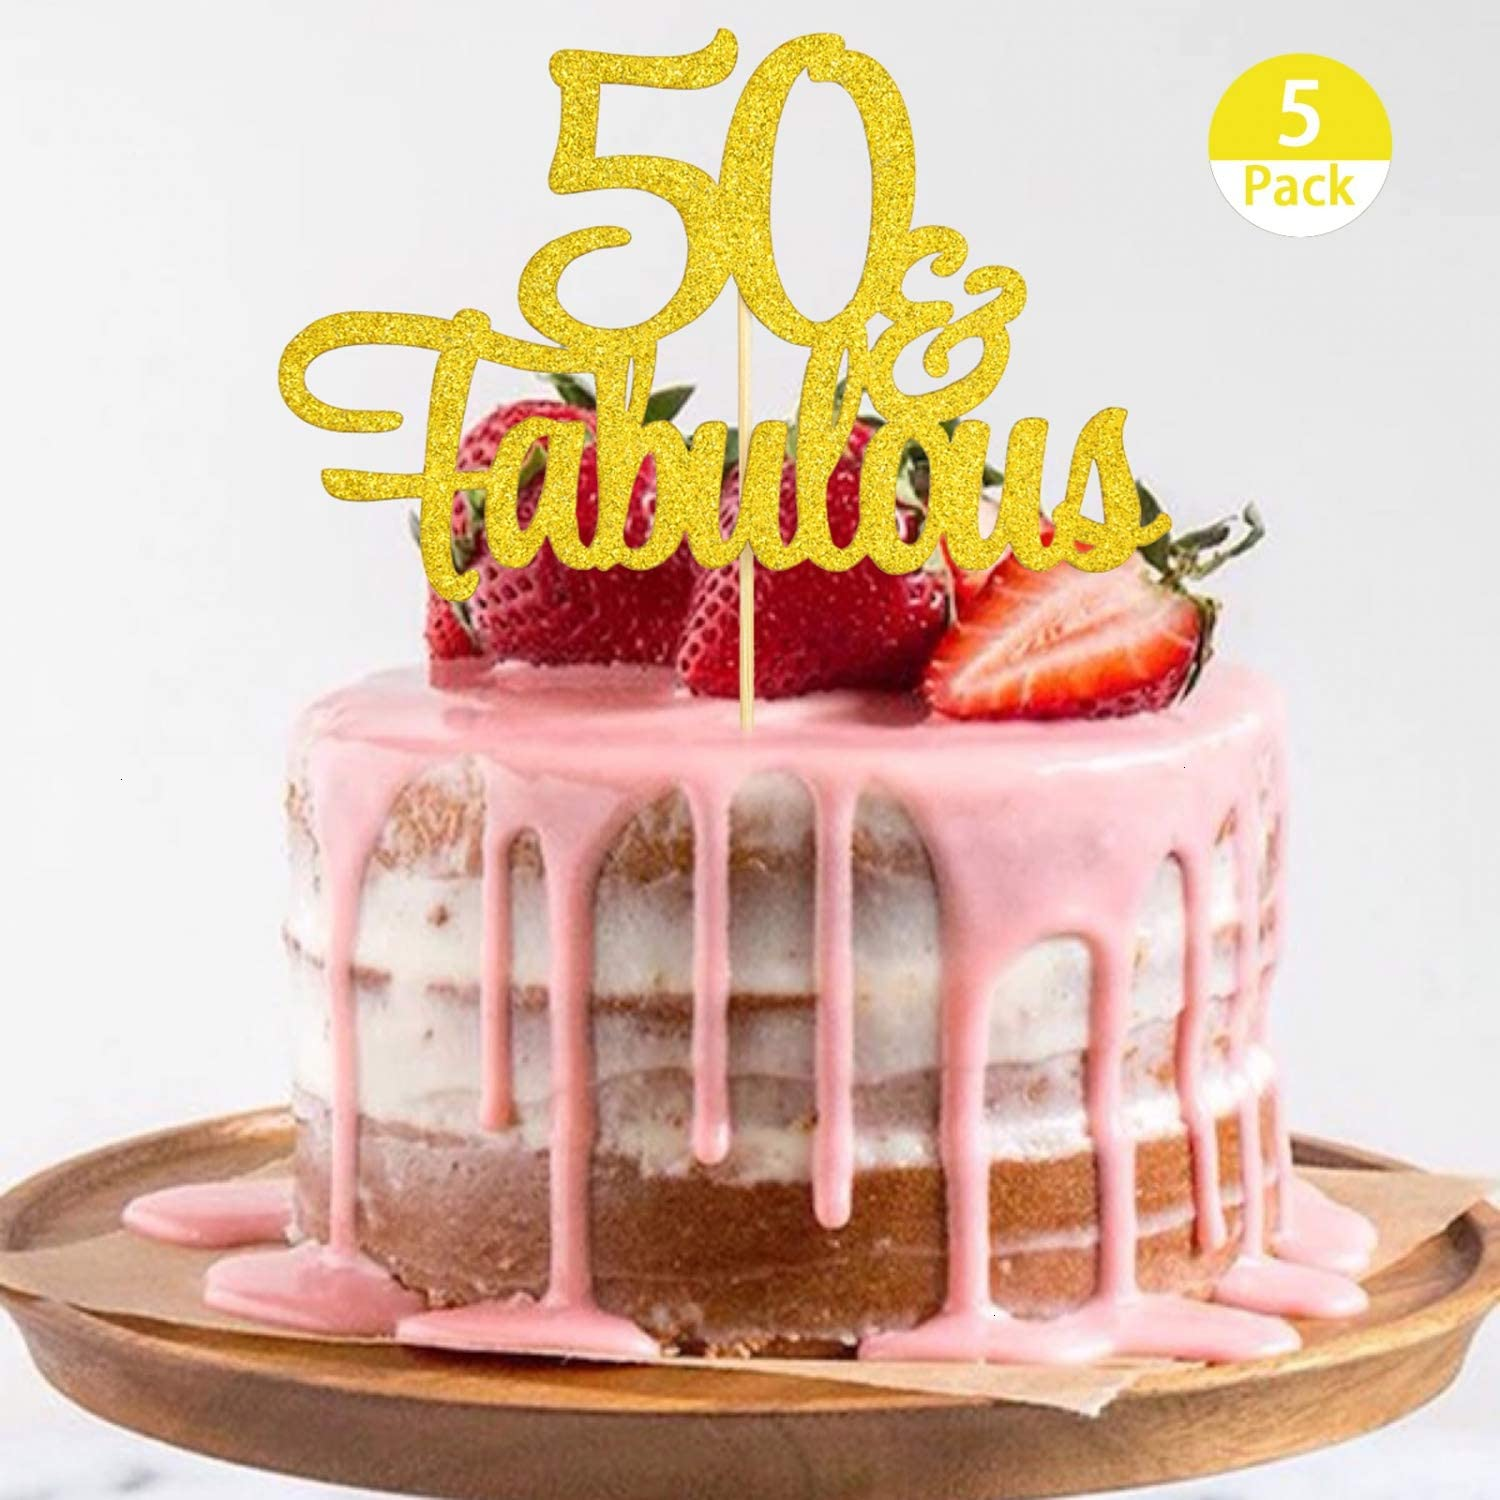 Outstanding Amazon Com Pomeat 5Pcs 50Th Birthday Cake Topper Gold Glitter 50 Funny Birthday Cards Online Overcheapnameinfo